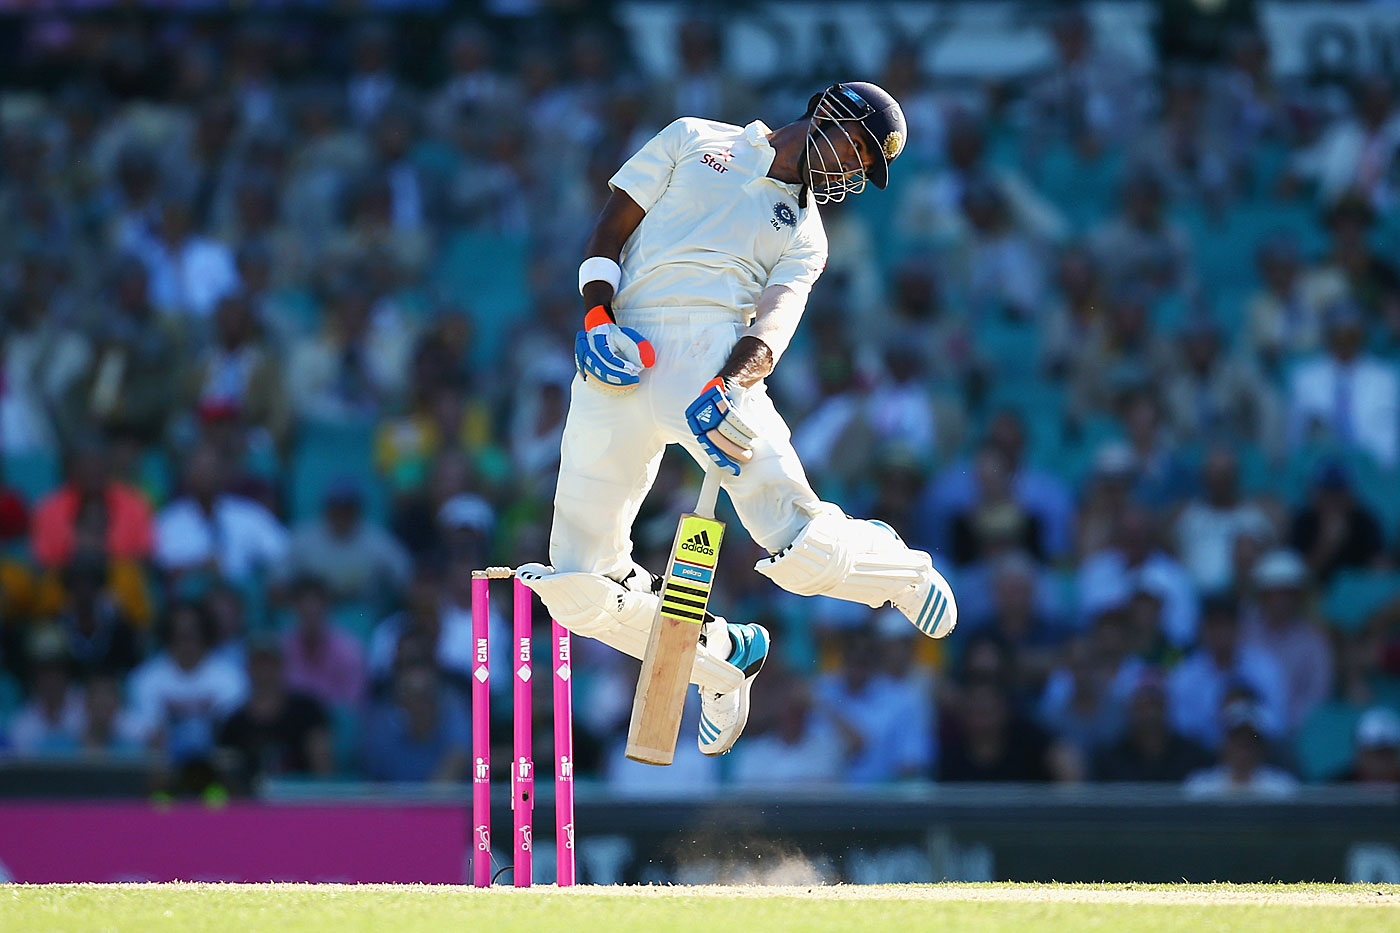 The bouncer is used to shake a batsman out of his comfort zone but sometimes the effects can be much more severe